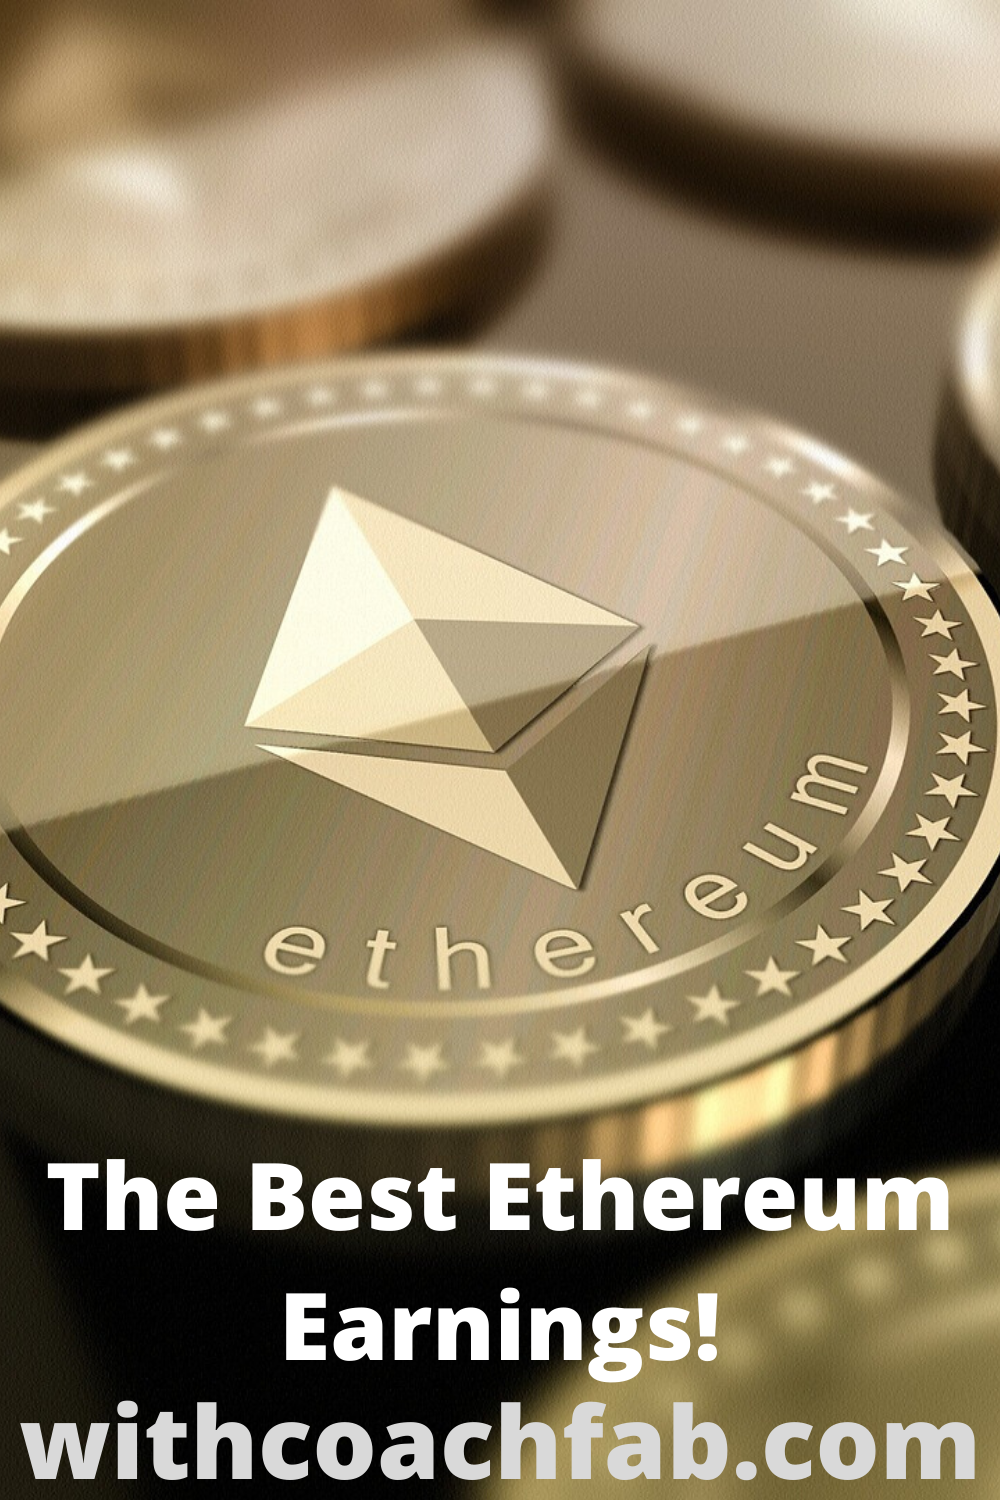 The best training for earning great volume of Ethereum!